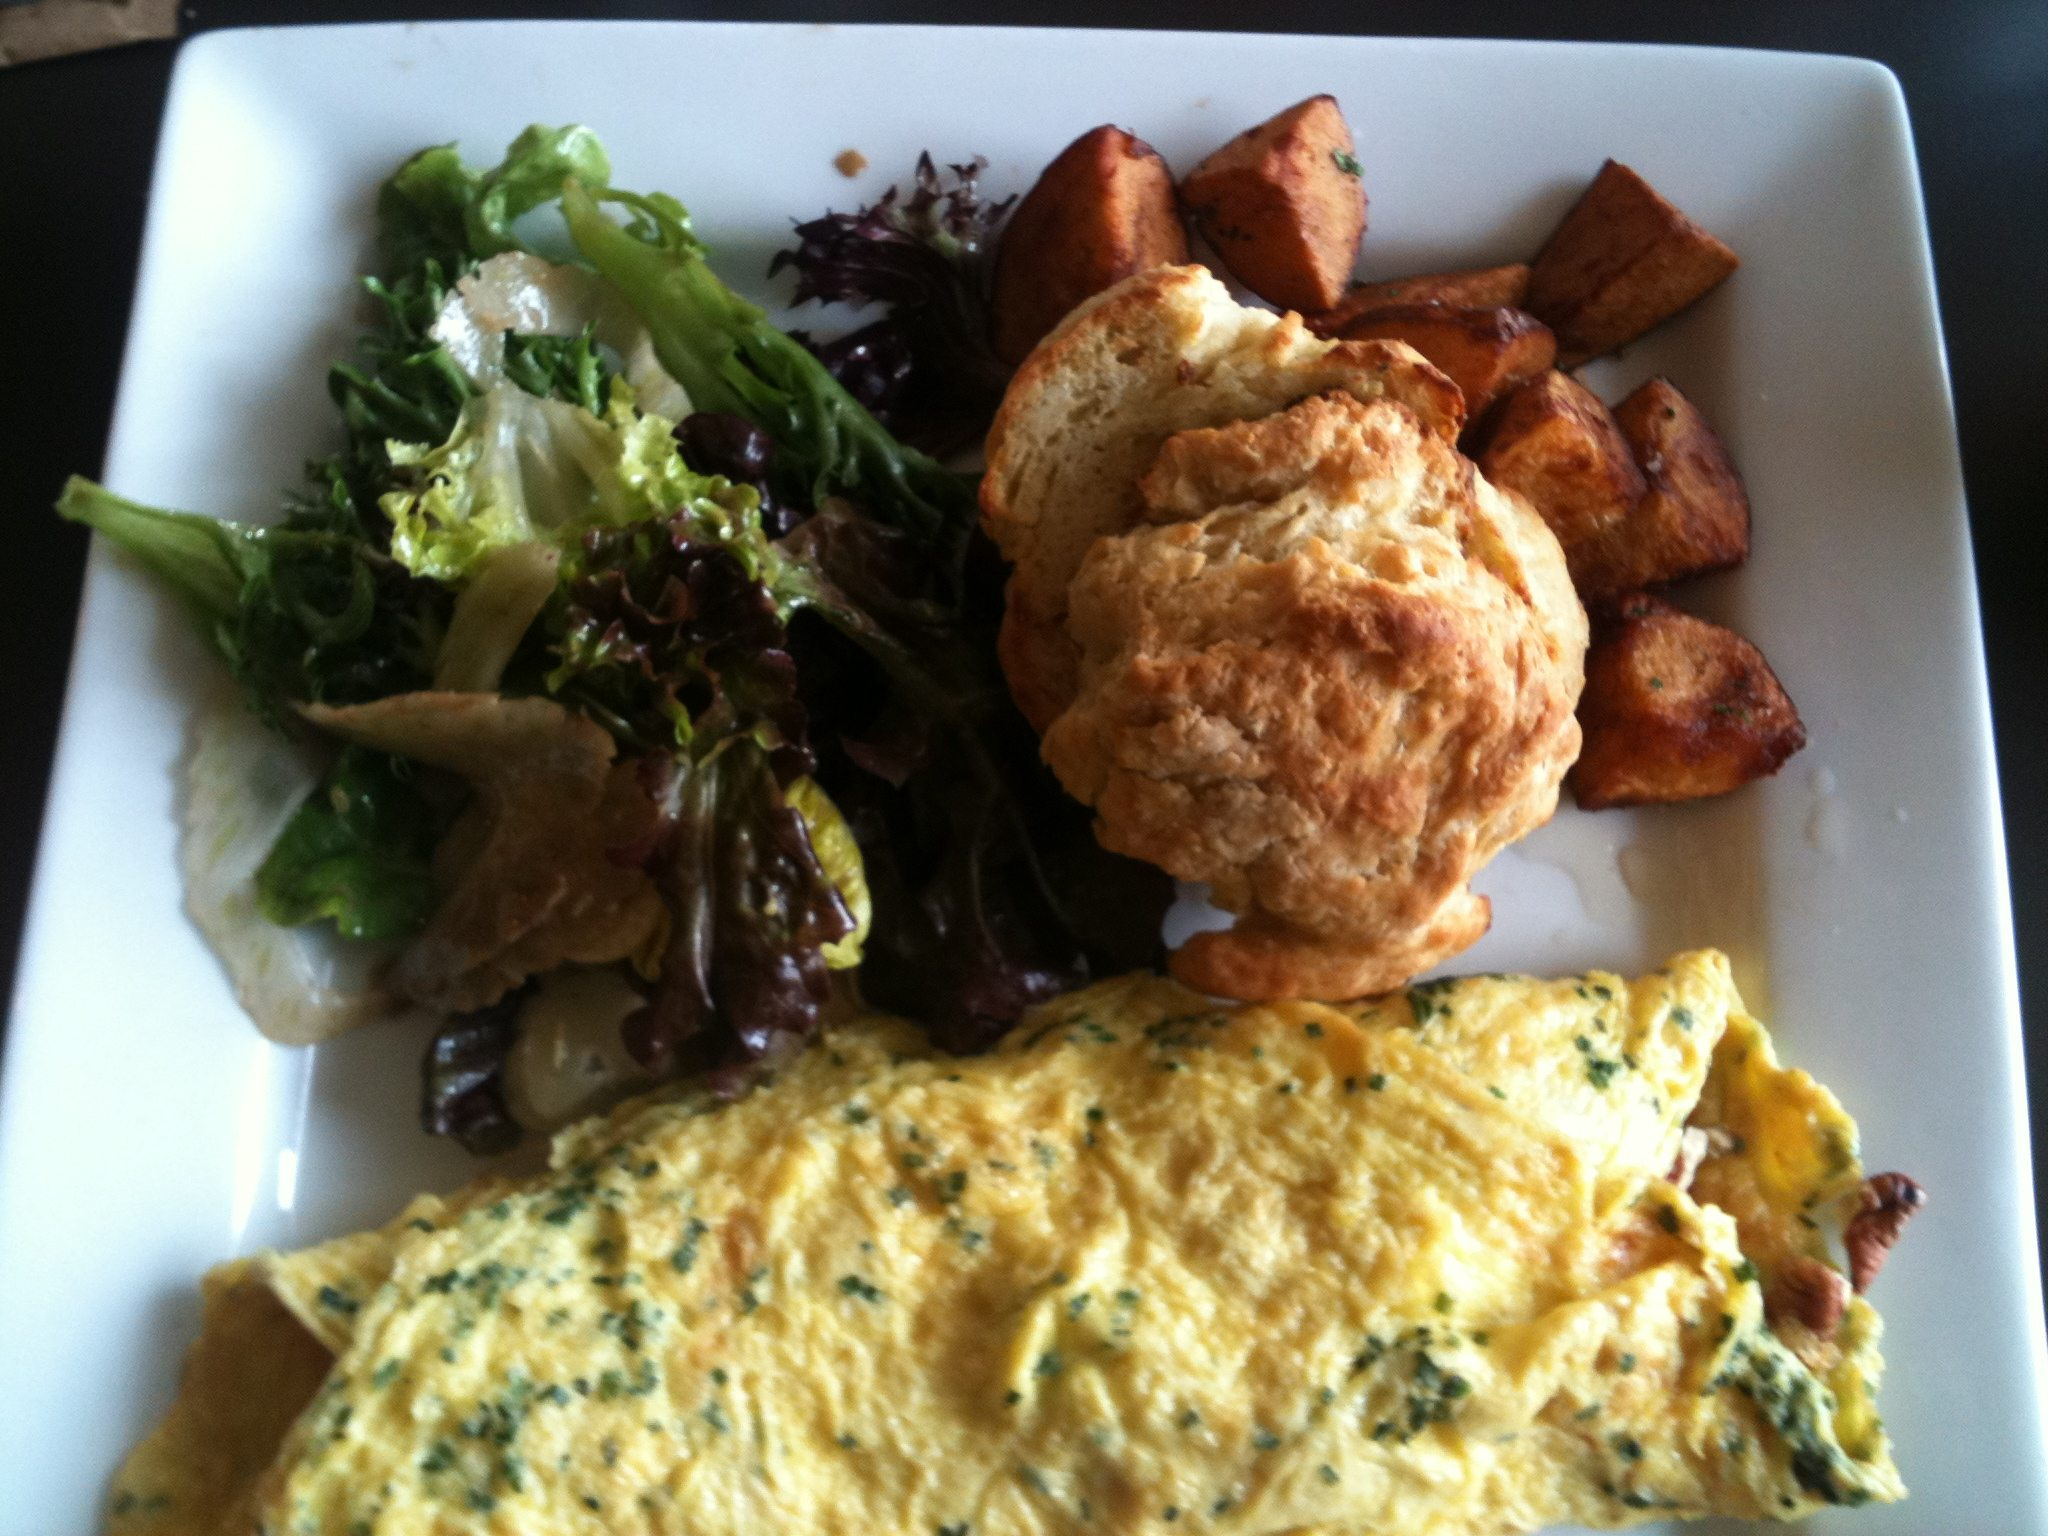 WEEKLY LUNCH PICK: Breakfast for lunch at Jak's Kitchen